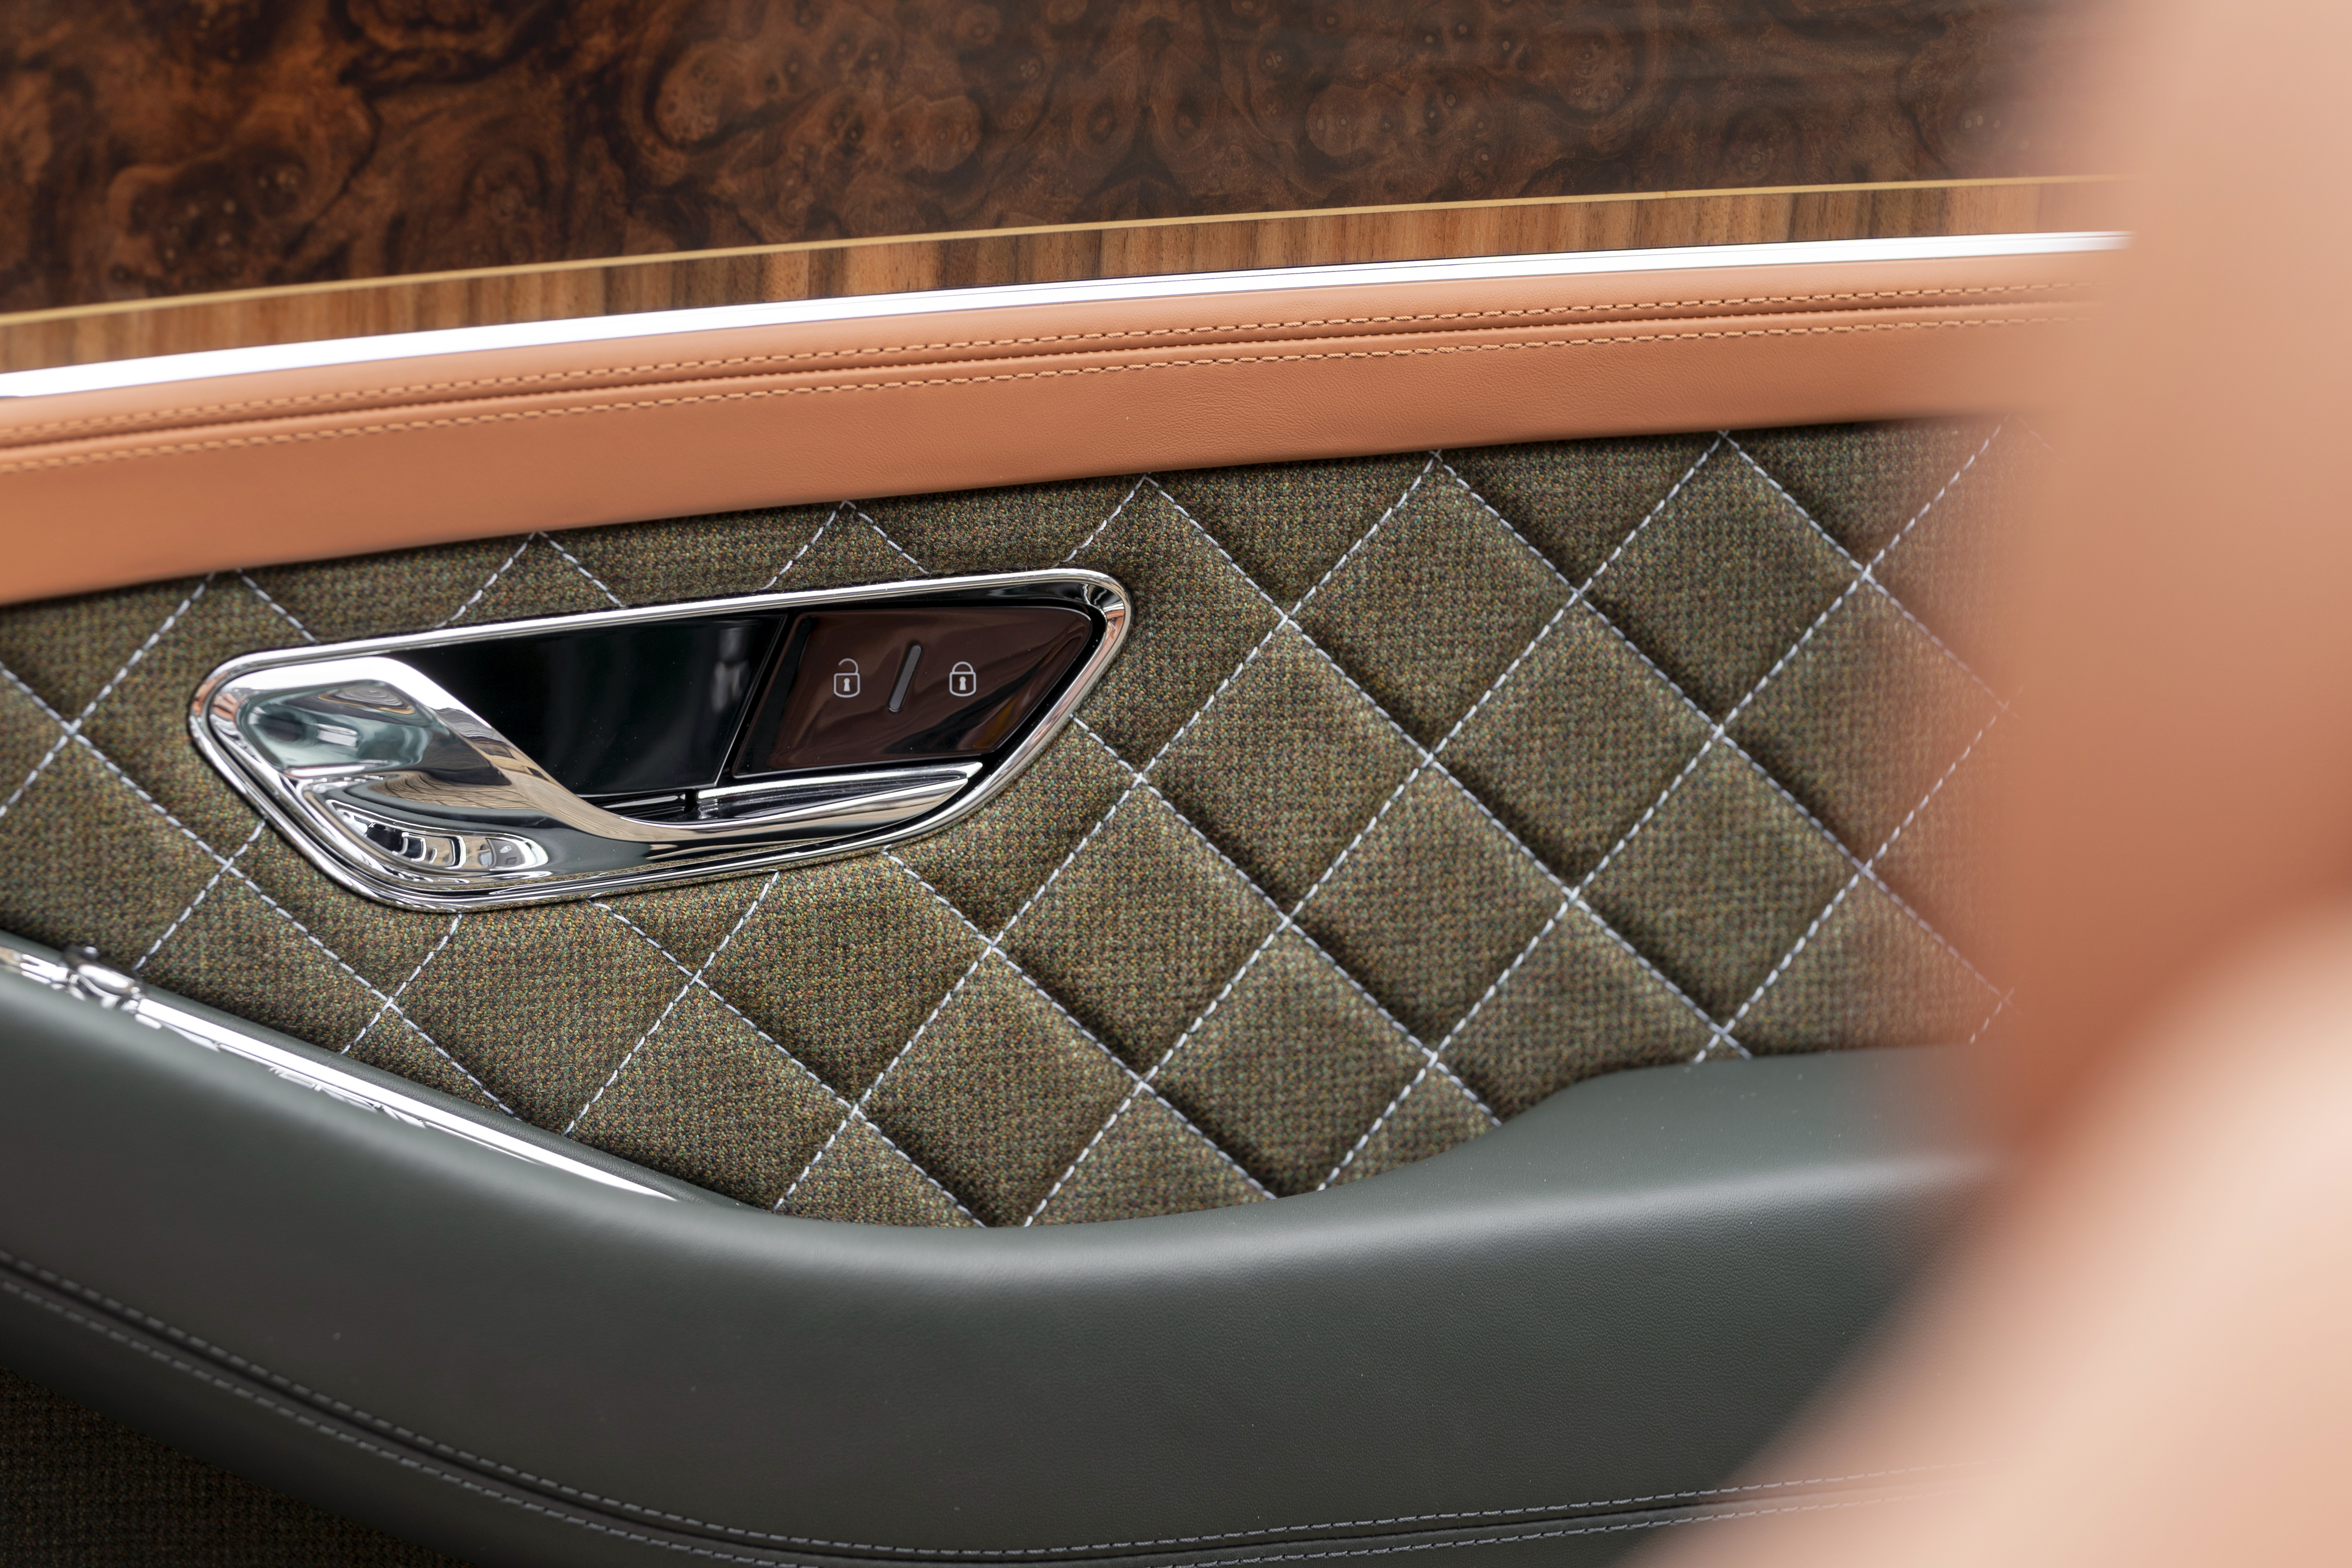 Discover the Continental GT Convertible Equestrian Edition with Rybrook Bentley Bristol